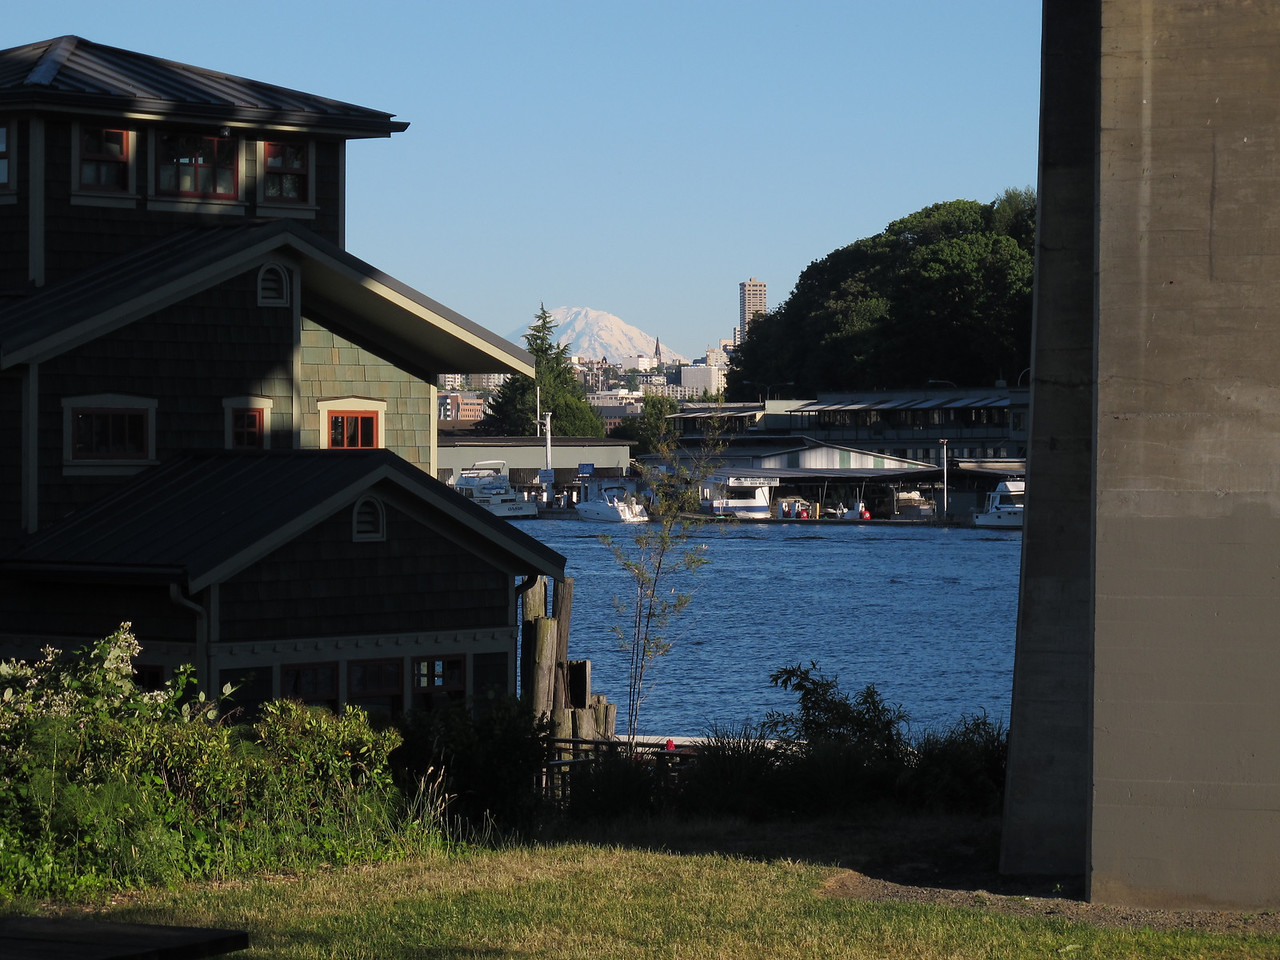 Tuesday, July 5, 2011. Mt. Rainer straddled between a housebout and a pillar of the Highway 99 bridge in Fremont, Seattle.